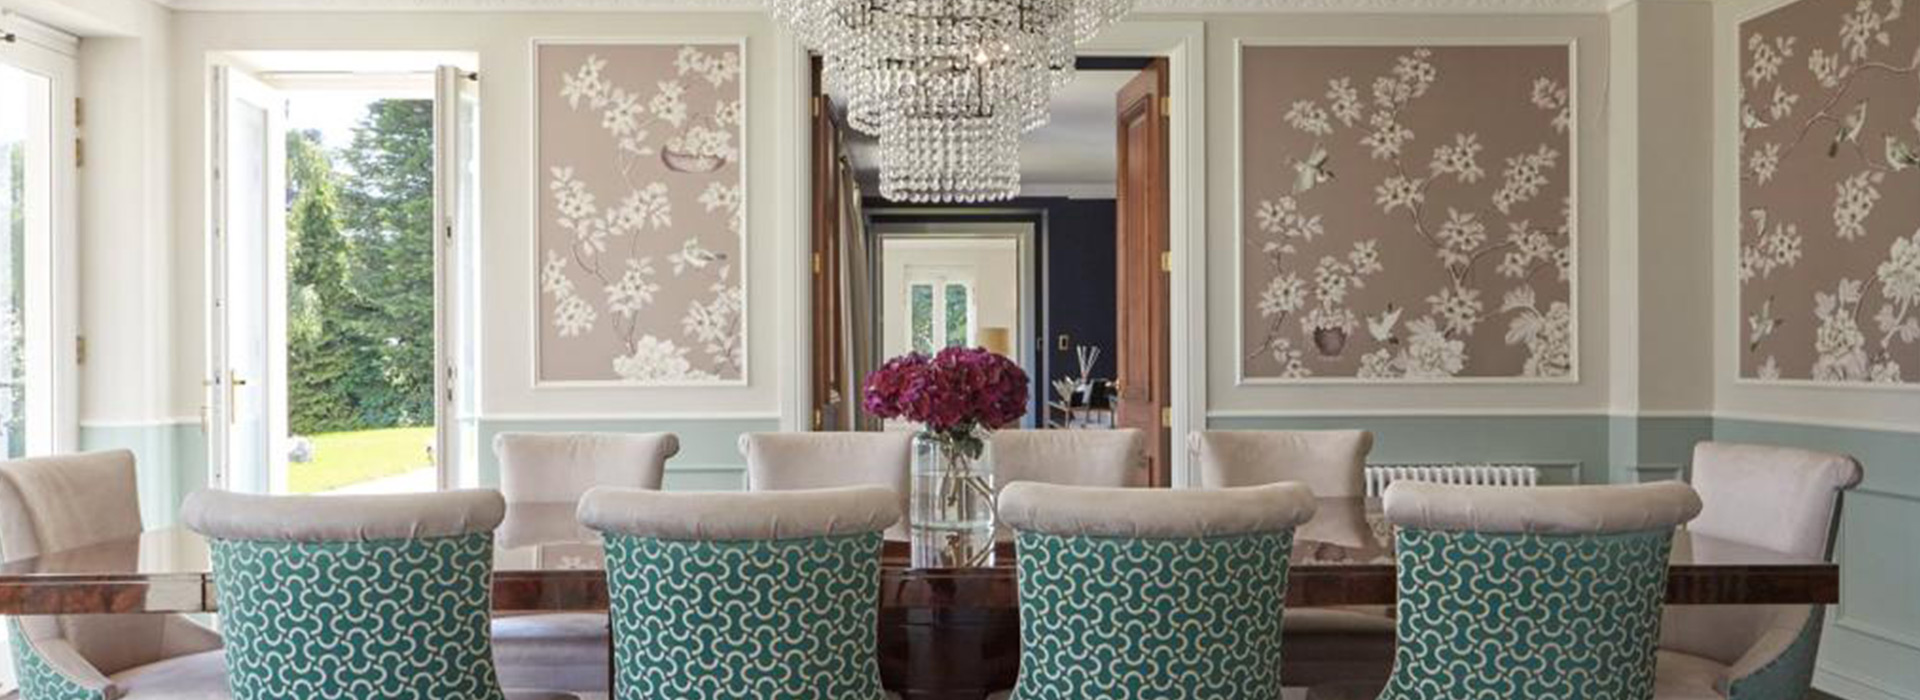 Luxury dining room with chandelier